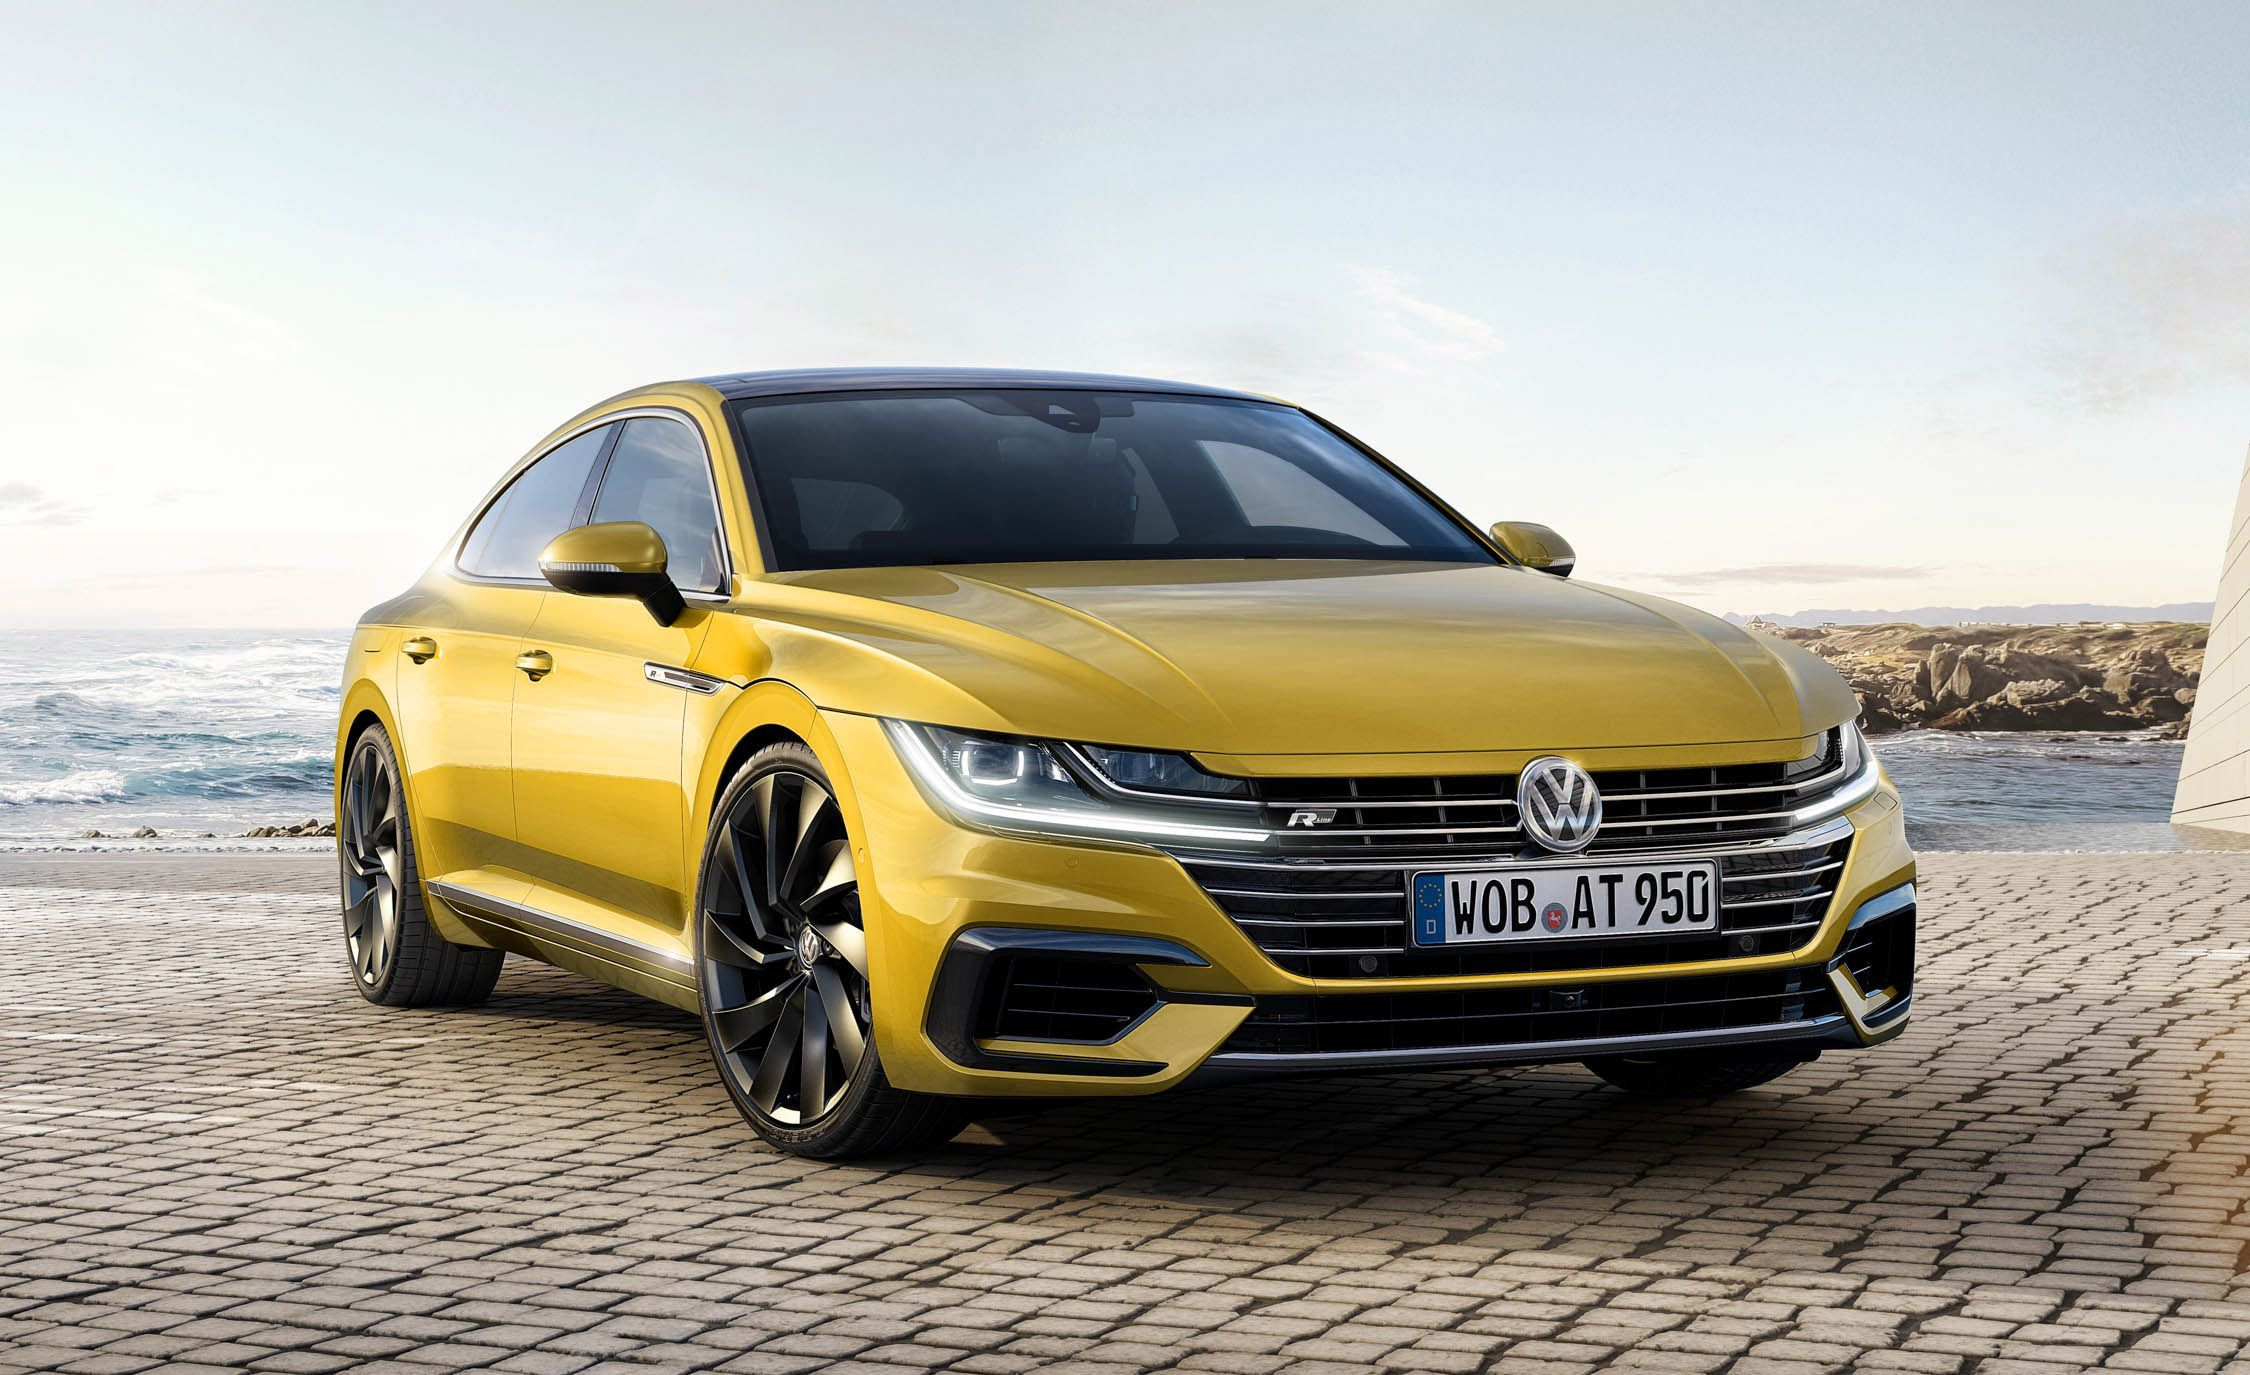 75 All New Next Generation Vw Cc Release Date and Concept